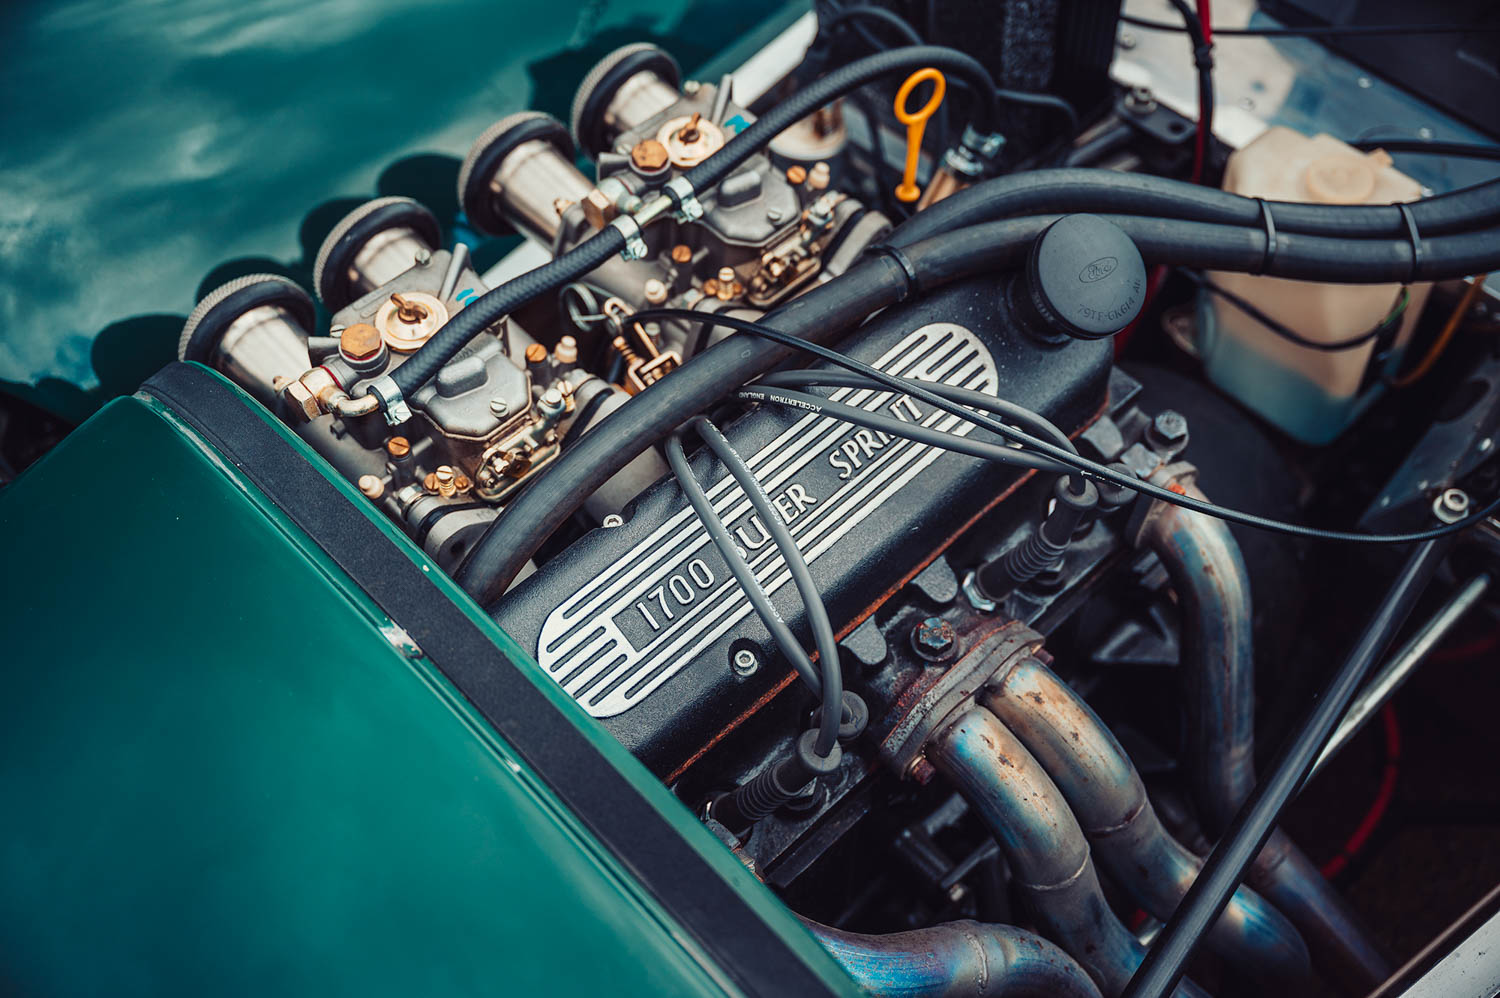 From mild to wild, Caterham Sevens come in a variety of tunes. With its 1.6-liter four and dual Webers, this one's 110 horsepower is more than enough to propel the 1300-pound car in grininducing ways.